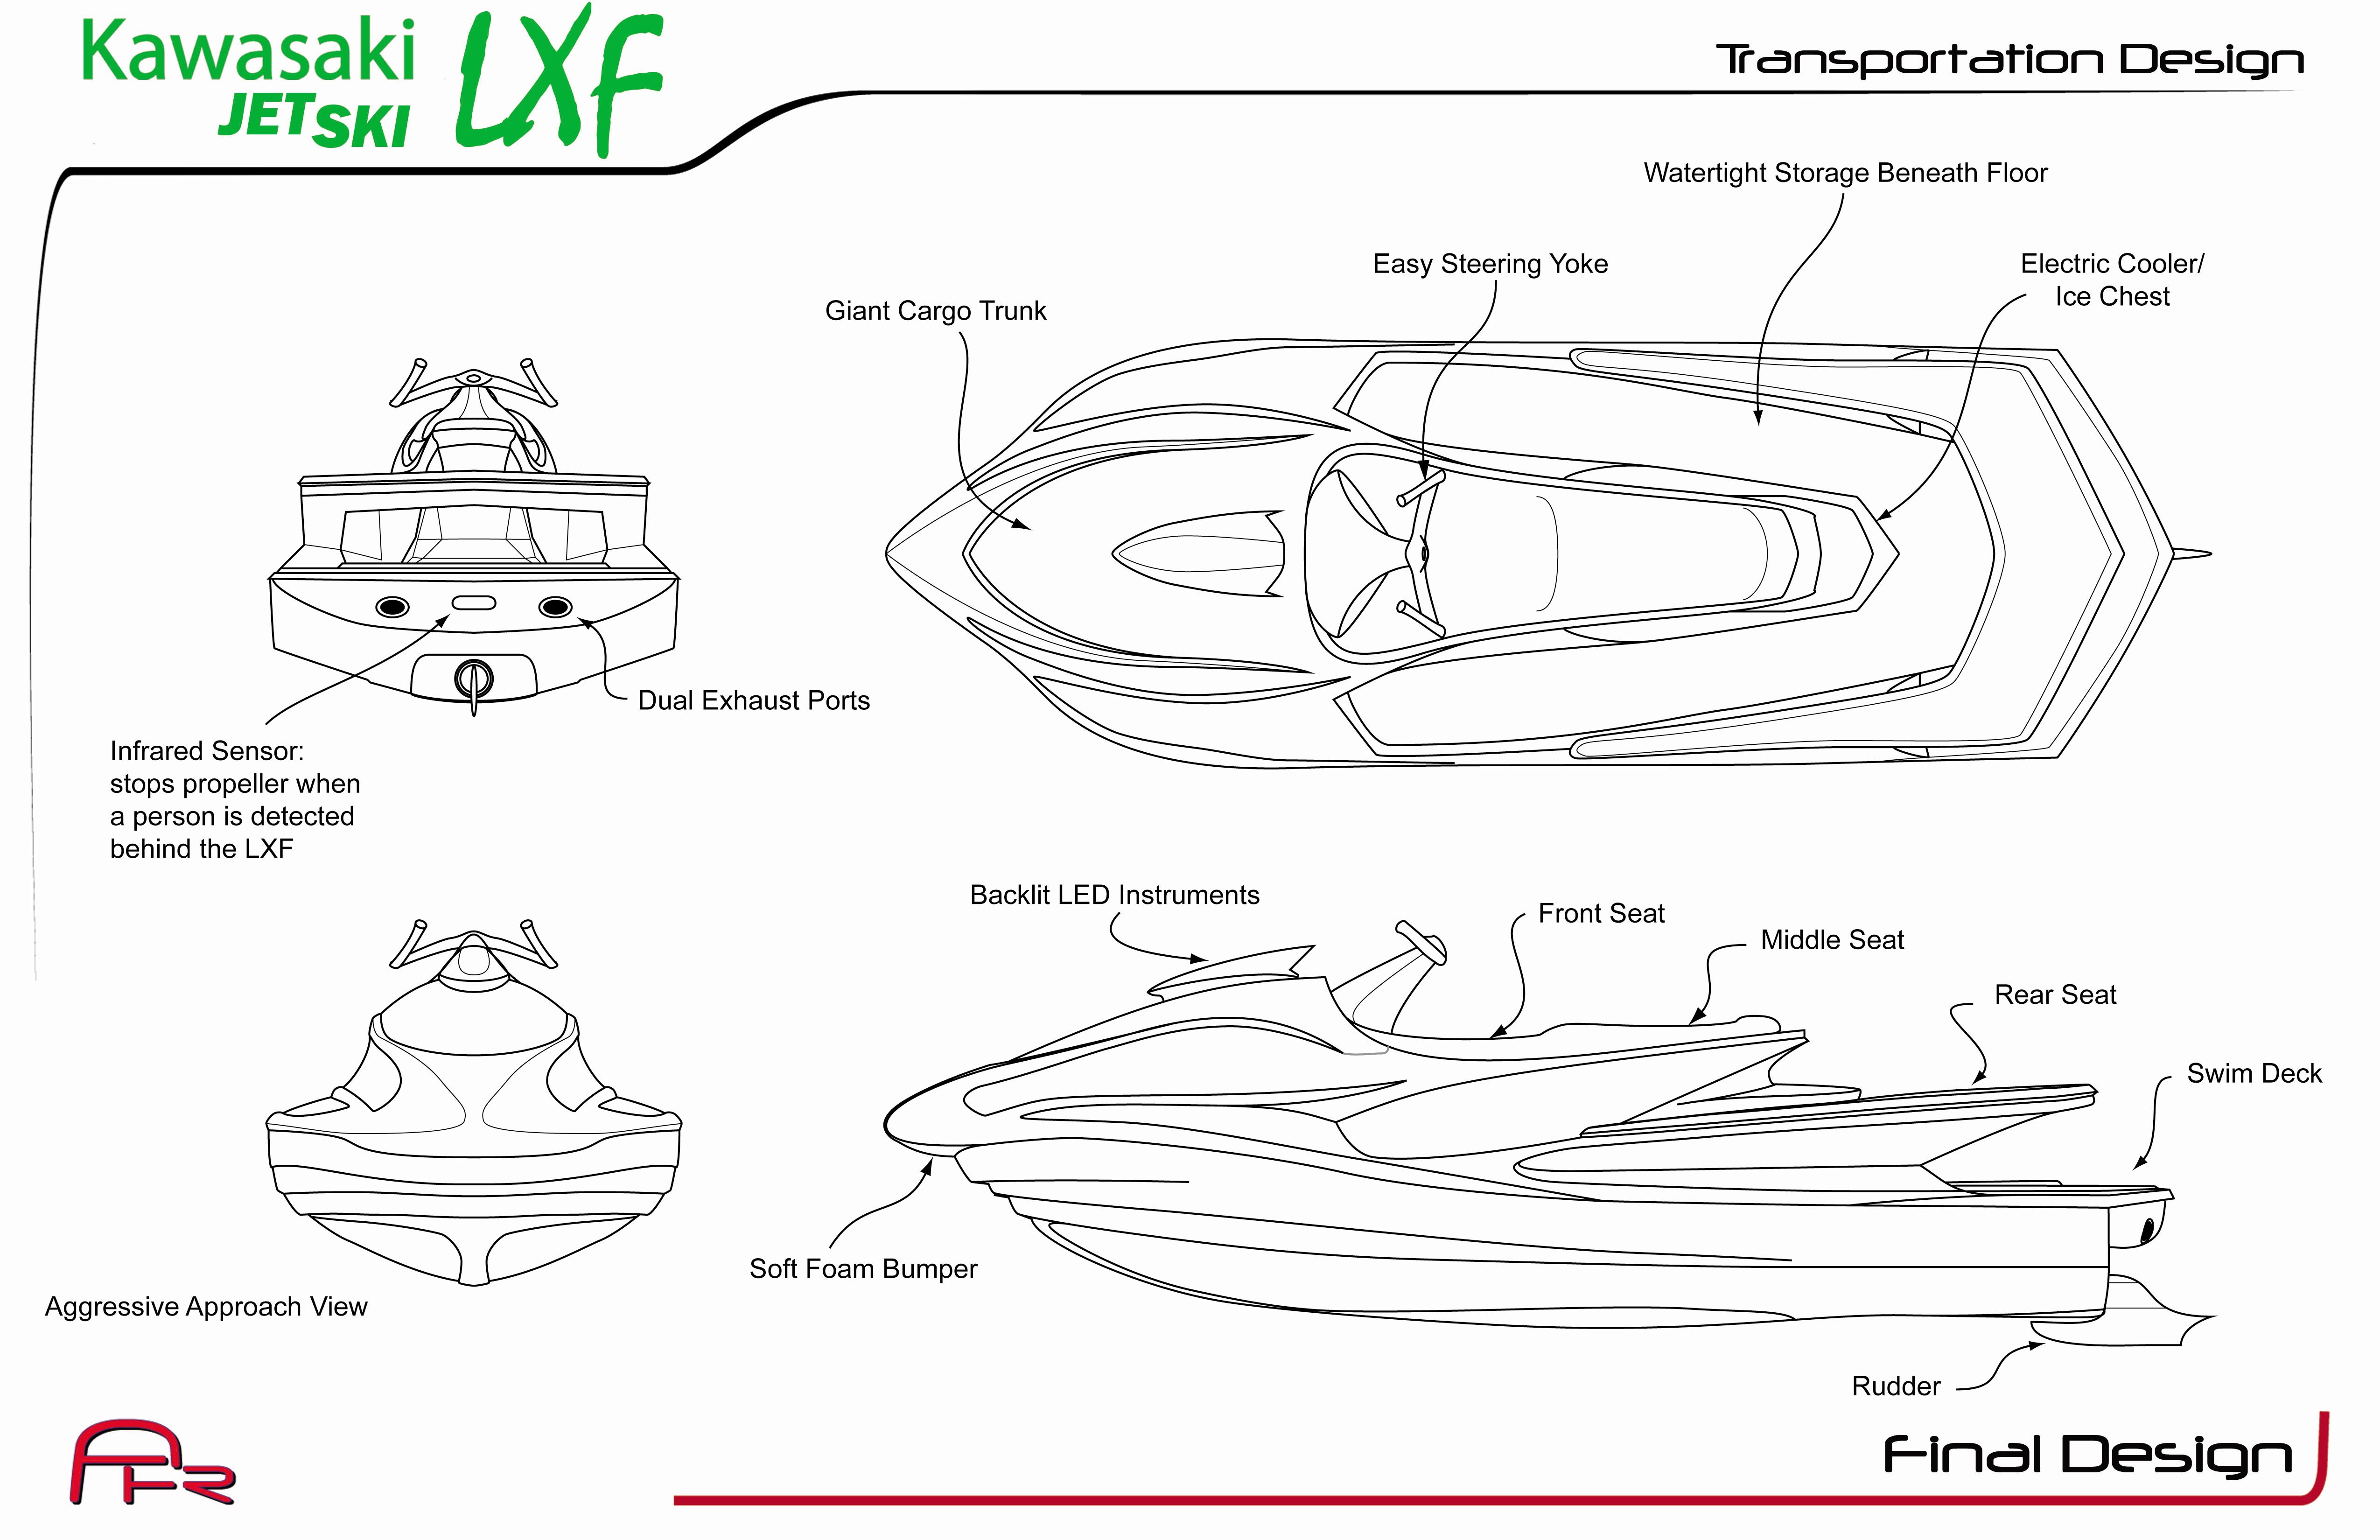 Gm 4 3l Oil Pan Diagram additionally 95 Chevy S10 Egr Valve Wiring additionally Boat Engine Diagram likewise Gm 5 0 Engine Diagram also 5 7 Vortec Fuel Pressure Specs. on mercruiser 3 7 specifications